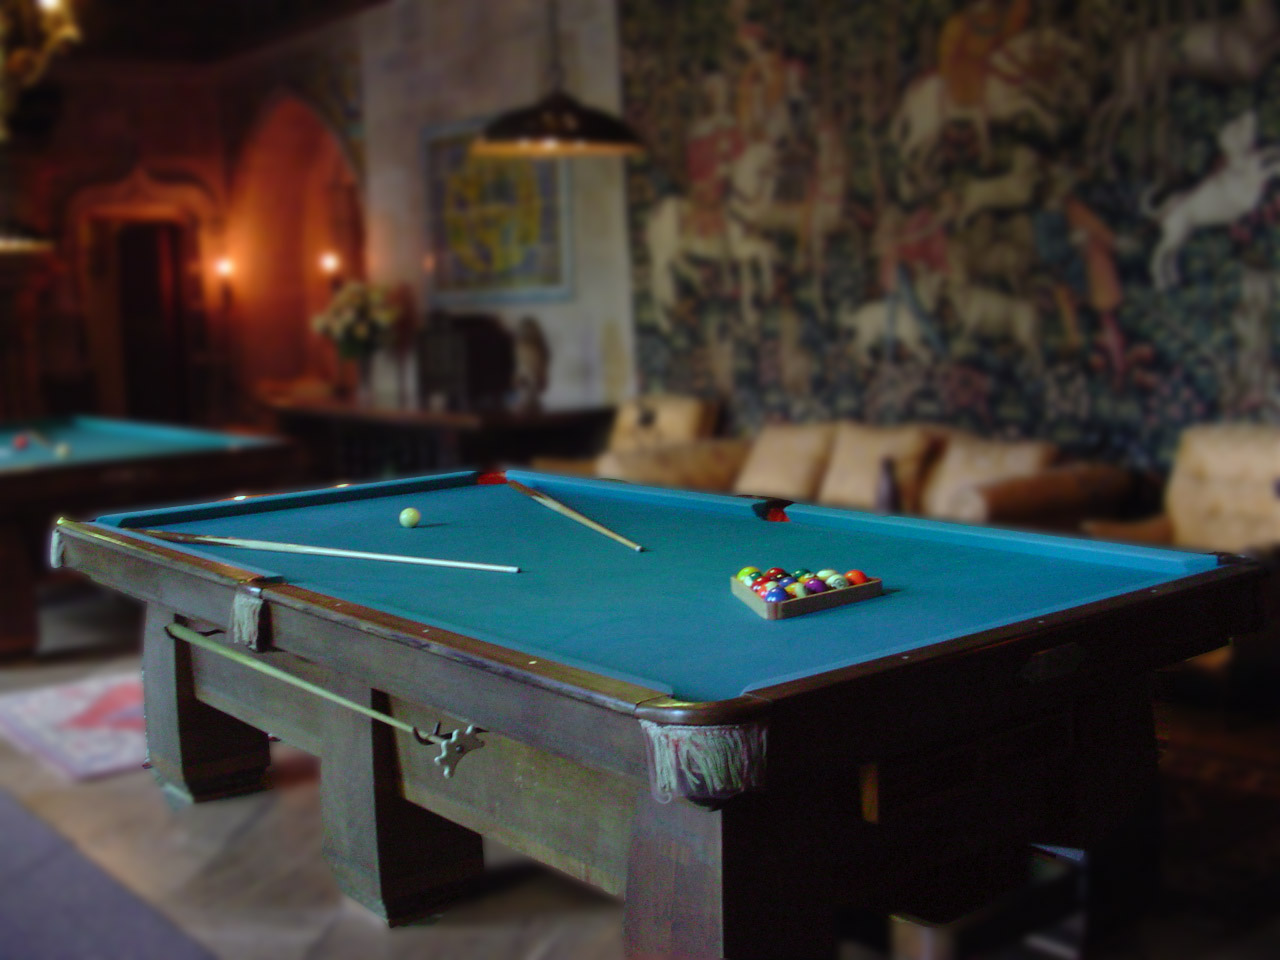 Top 42 beautiful pool table and snooker wallpapers in hd - Billiard table vs pool table ...